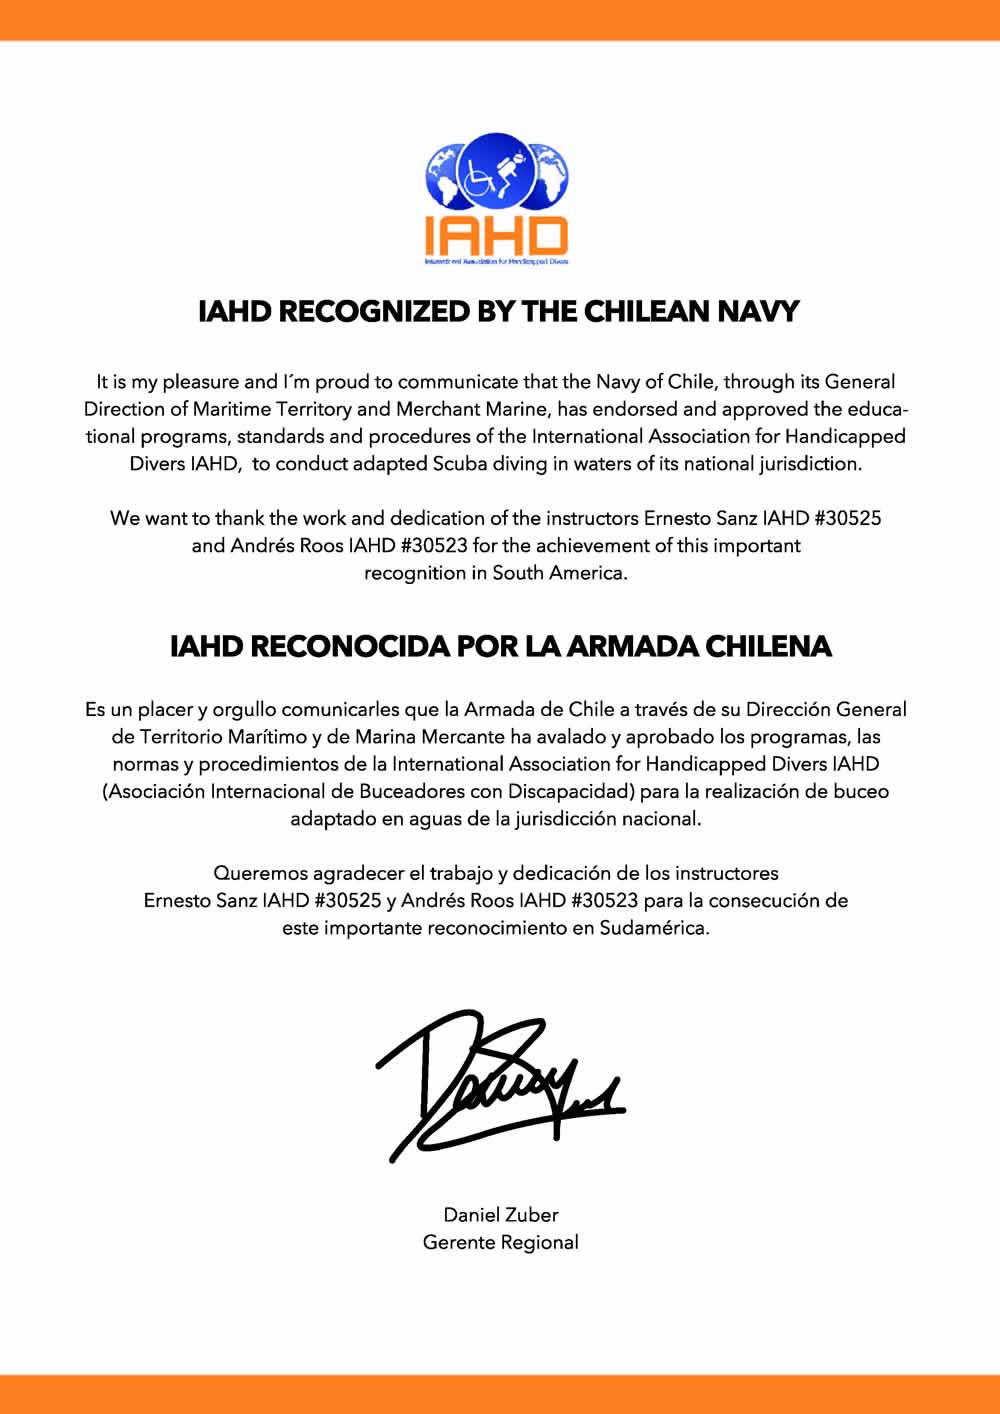 IAHD is recognised by the Chilean Navy